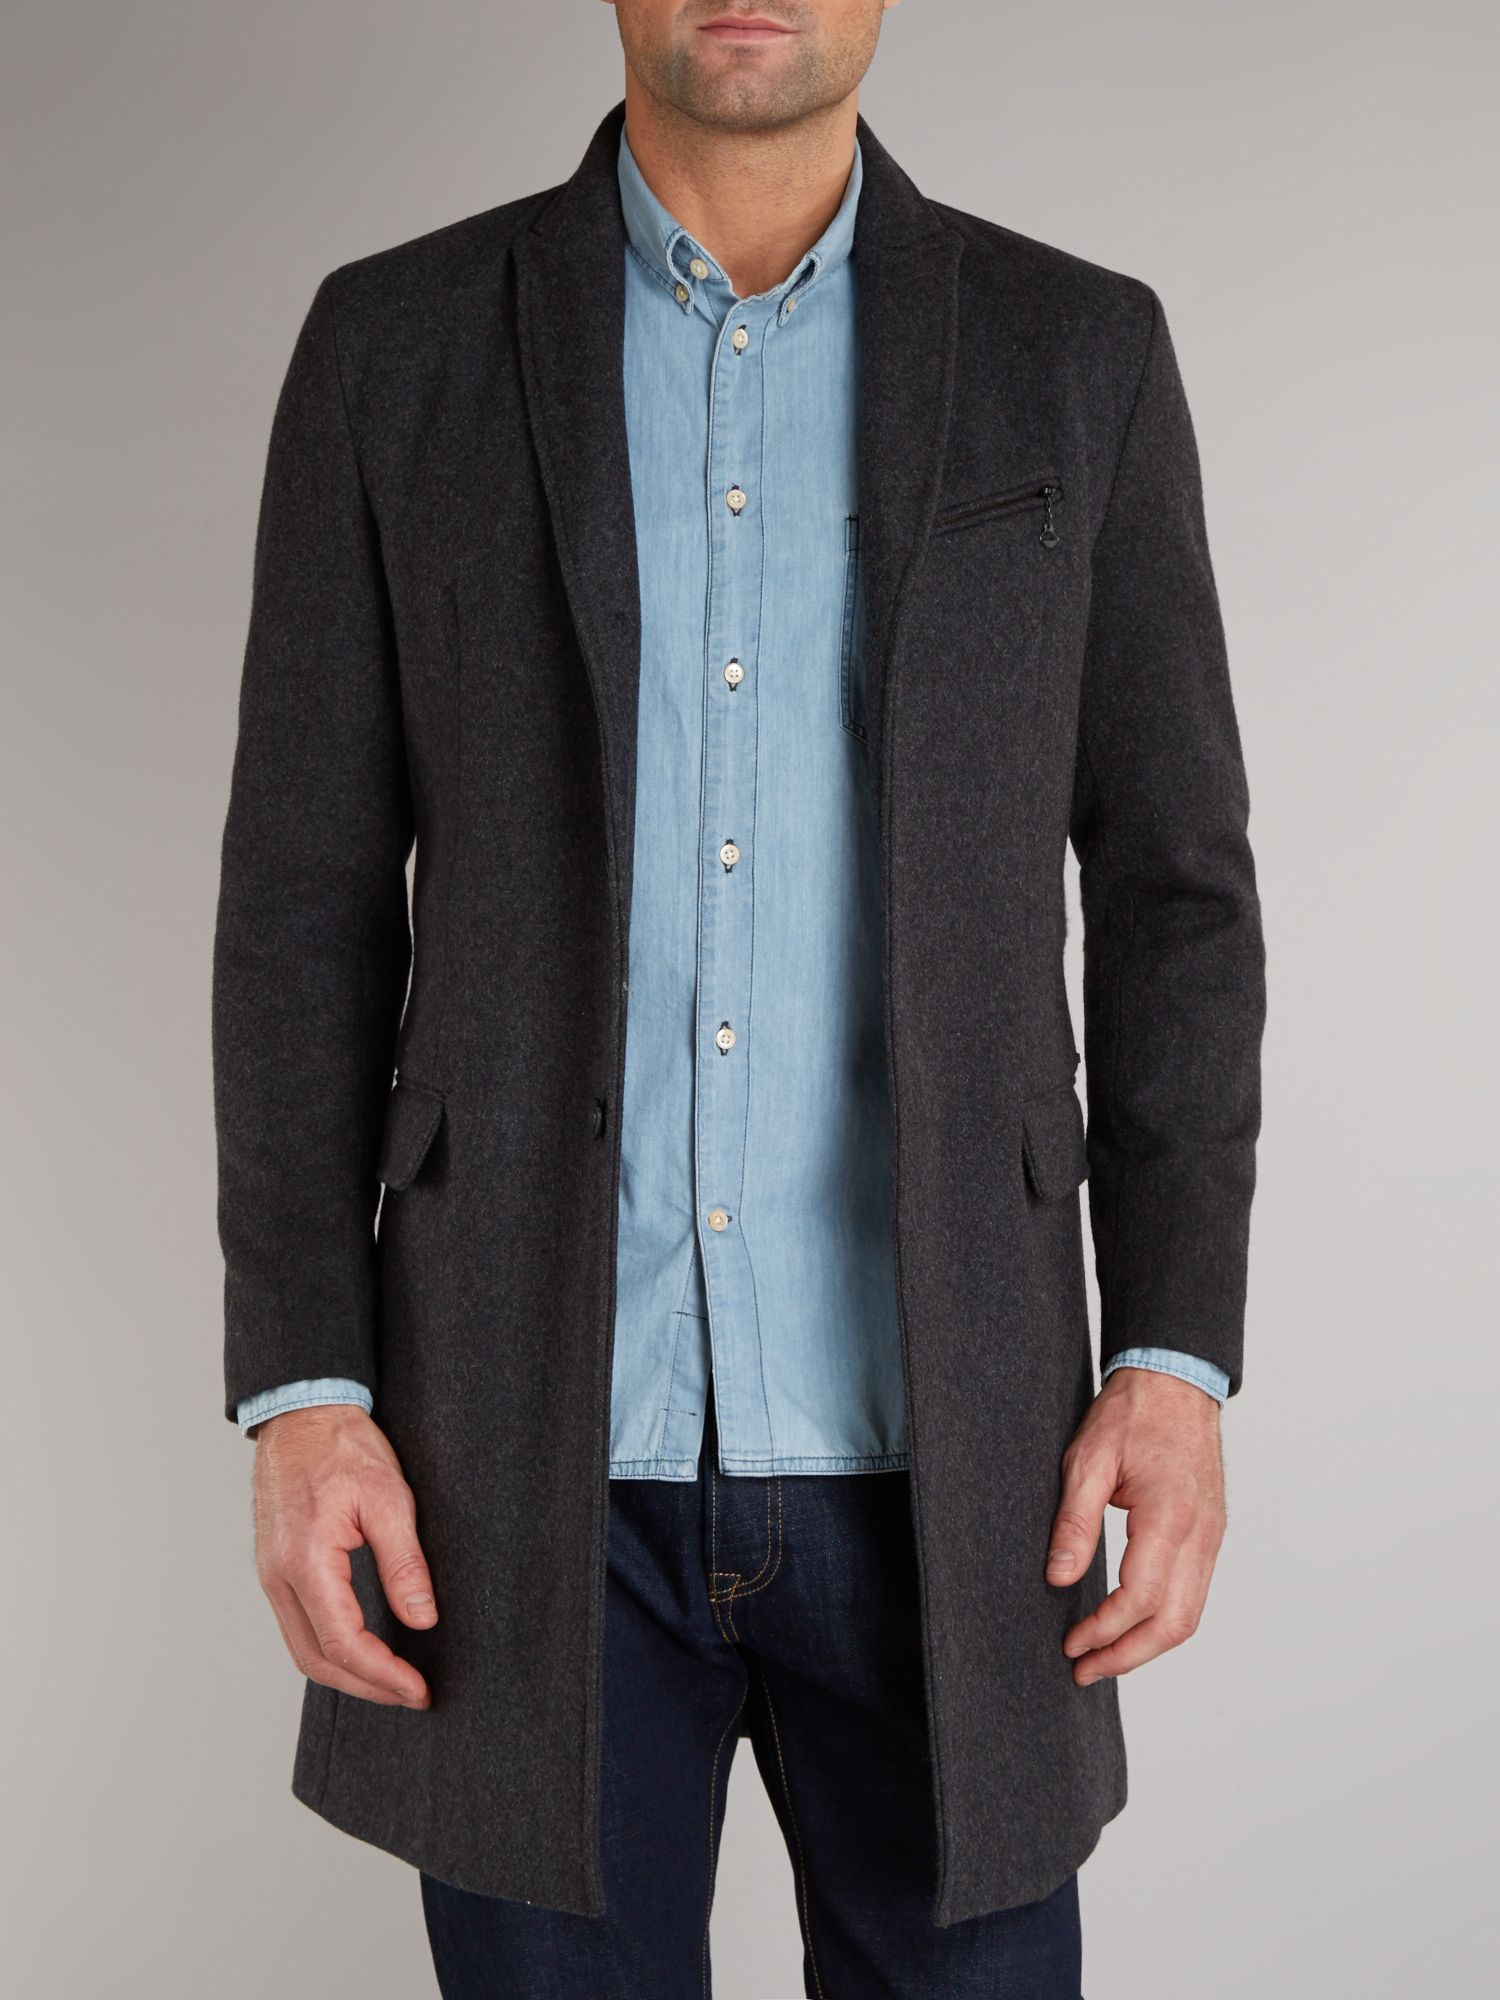 Three quarter length jacket